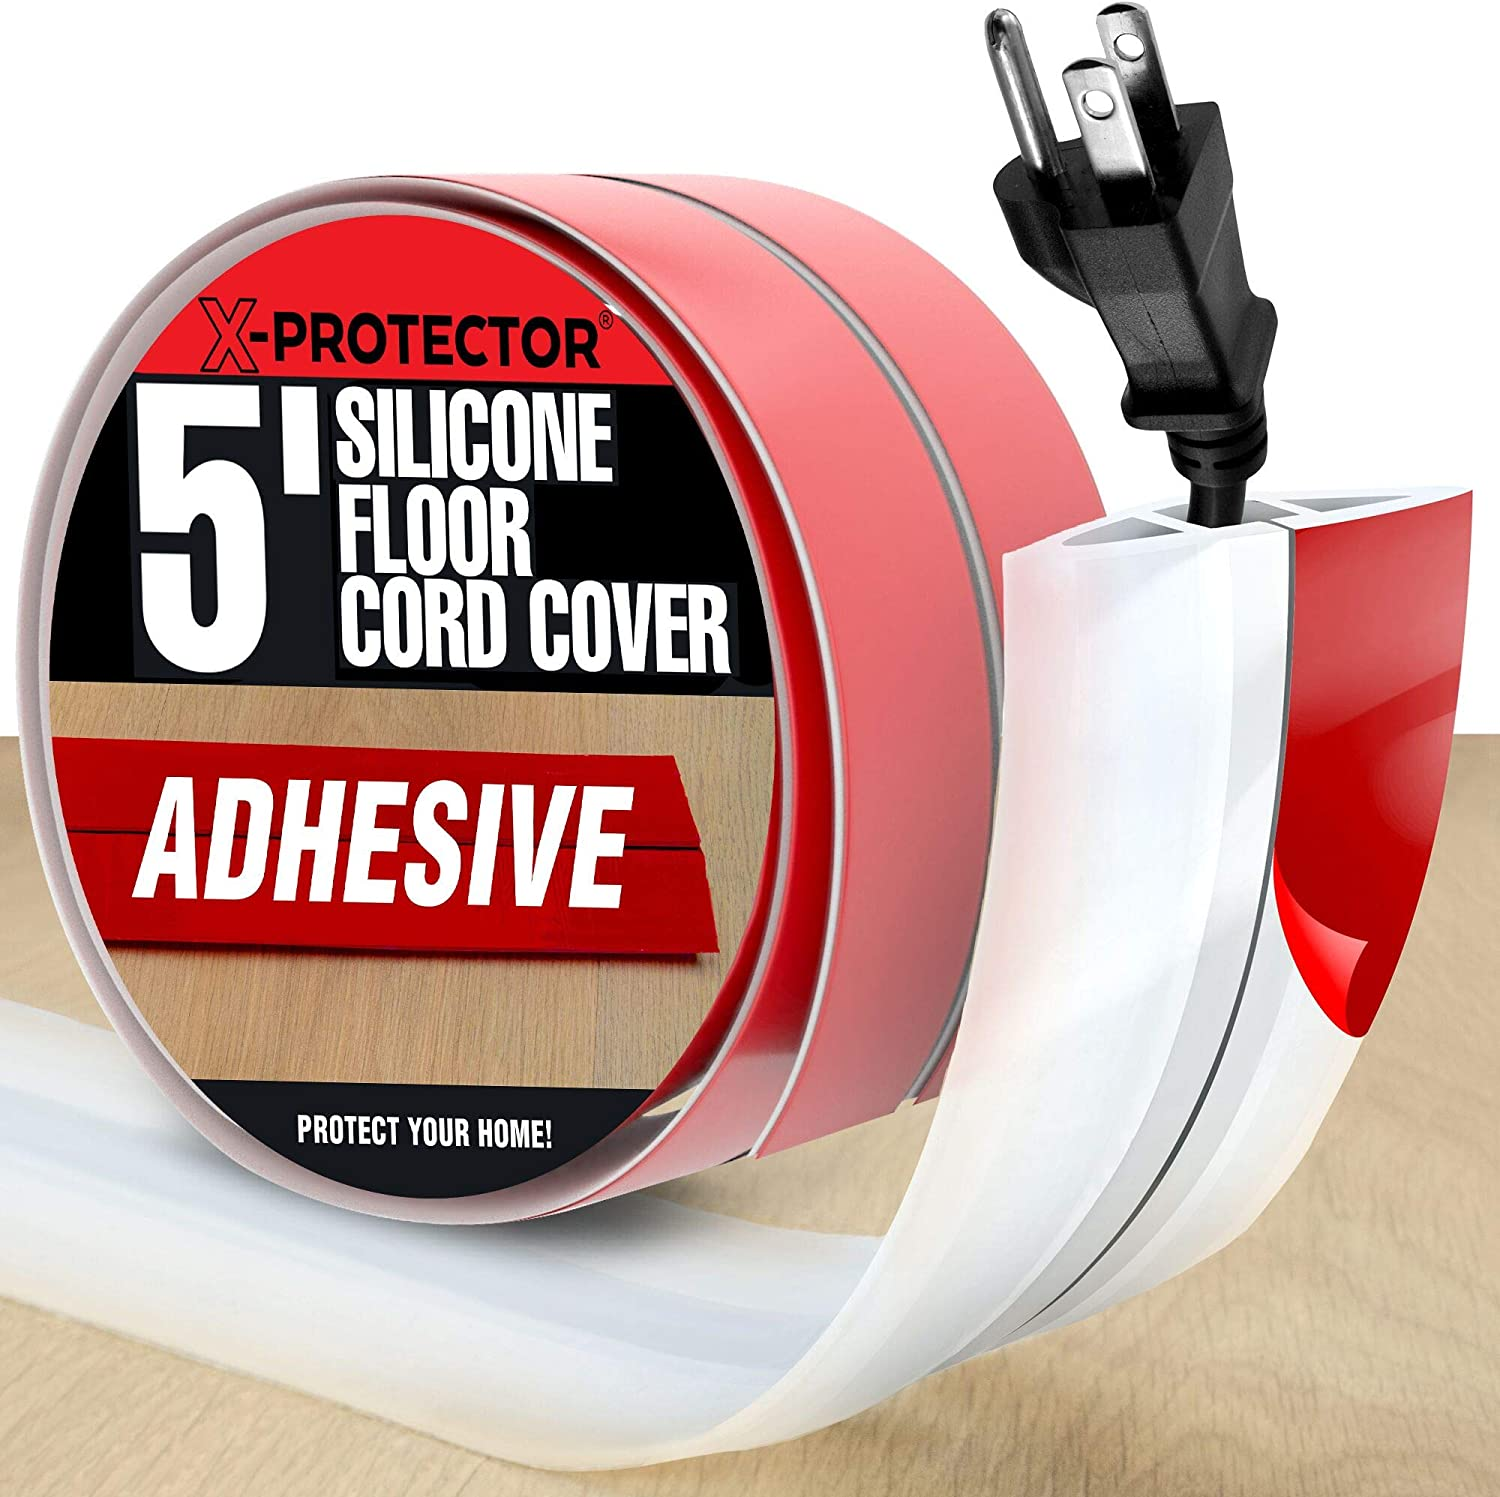 Floor Cord Cover X-Protector – Overfloor Cord Protector – 5' Silicone White Cord Protector – Ideal Extension Cord Cover to Protect Wires On Floor – Self-Adhesive Power Cable Protector (60 in)